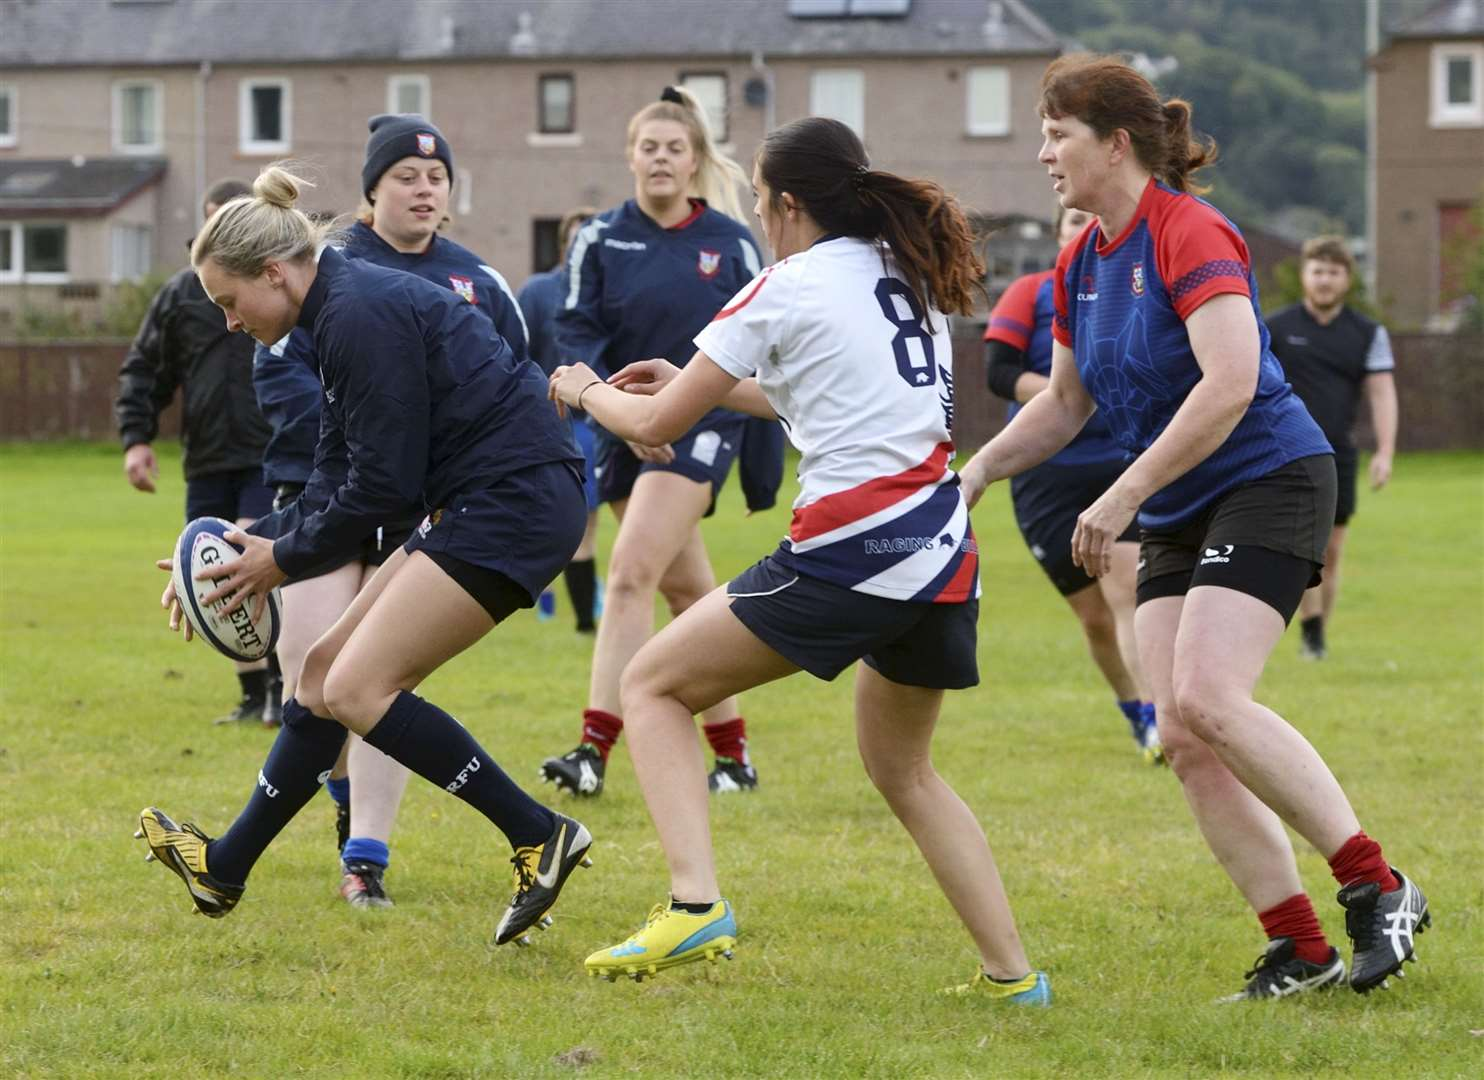 Craig Dunain Ladies RFC,.The women of Craig Dunain Ladies RFC, at rugby training..Picture: James MacKenzie..